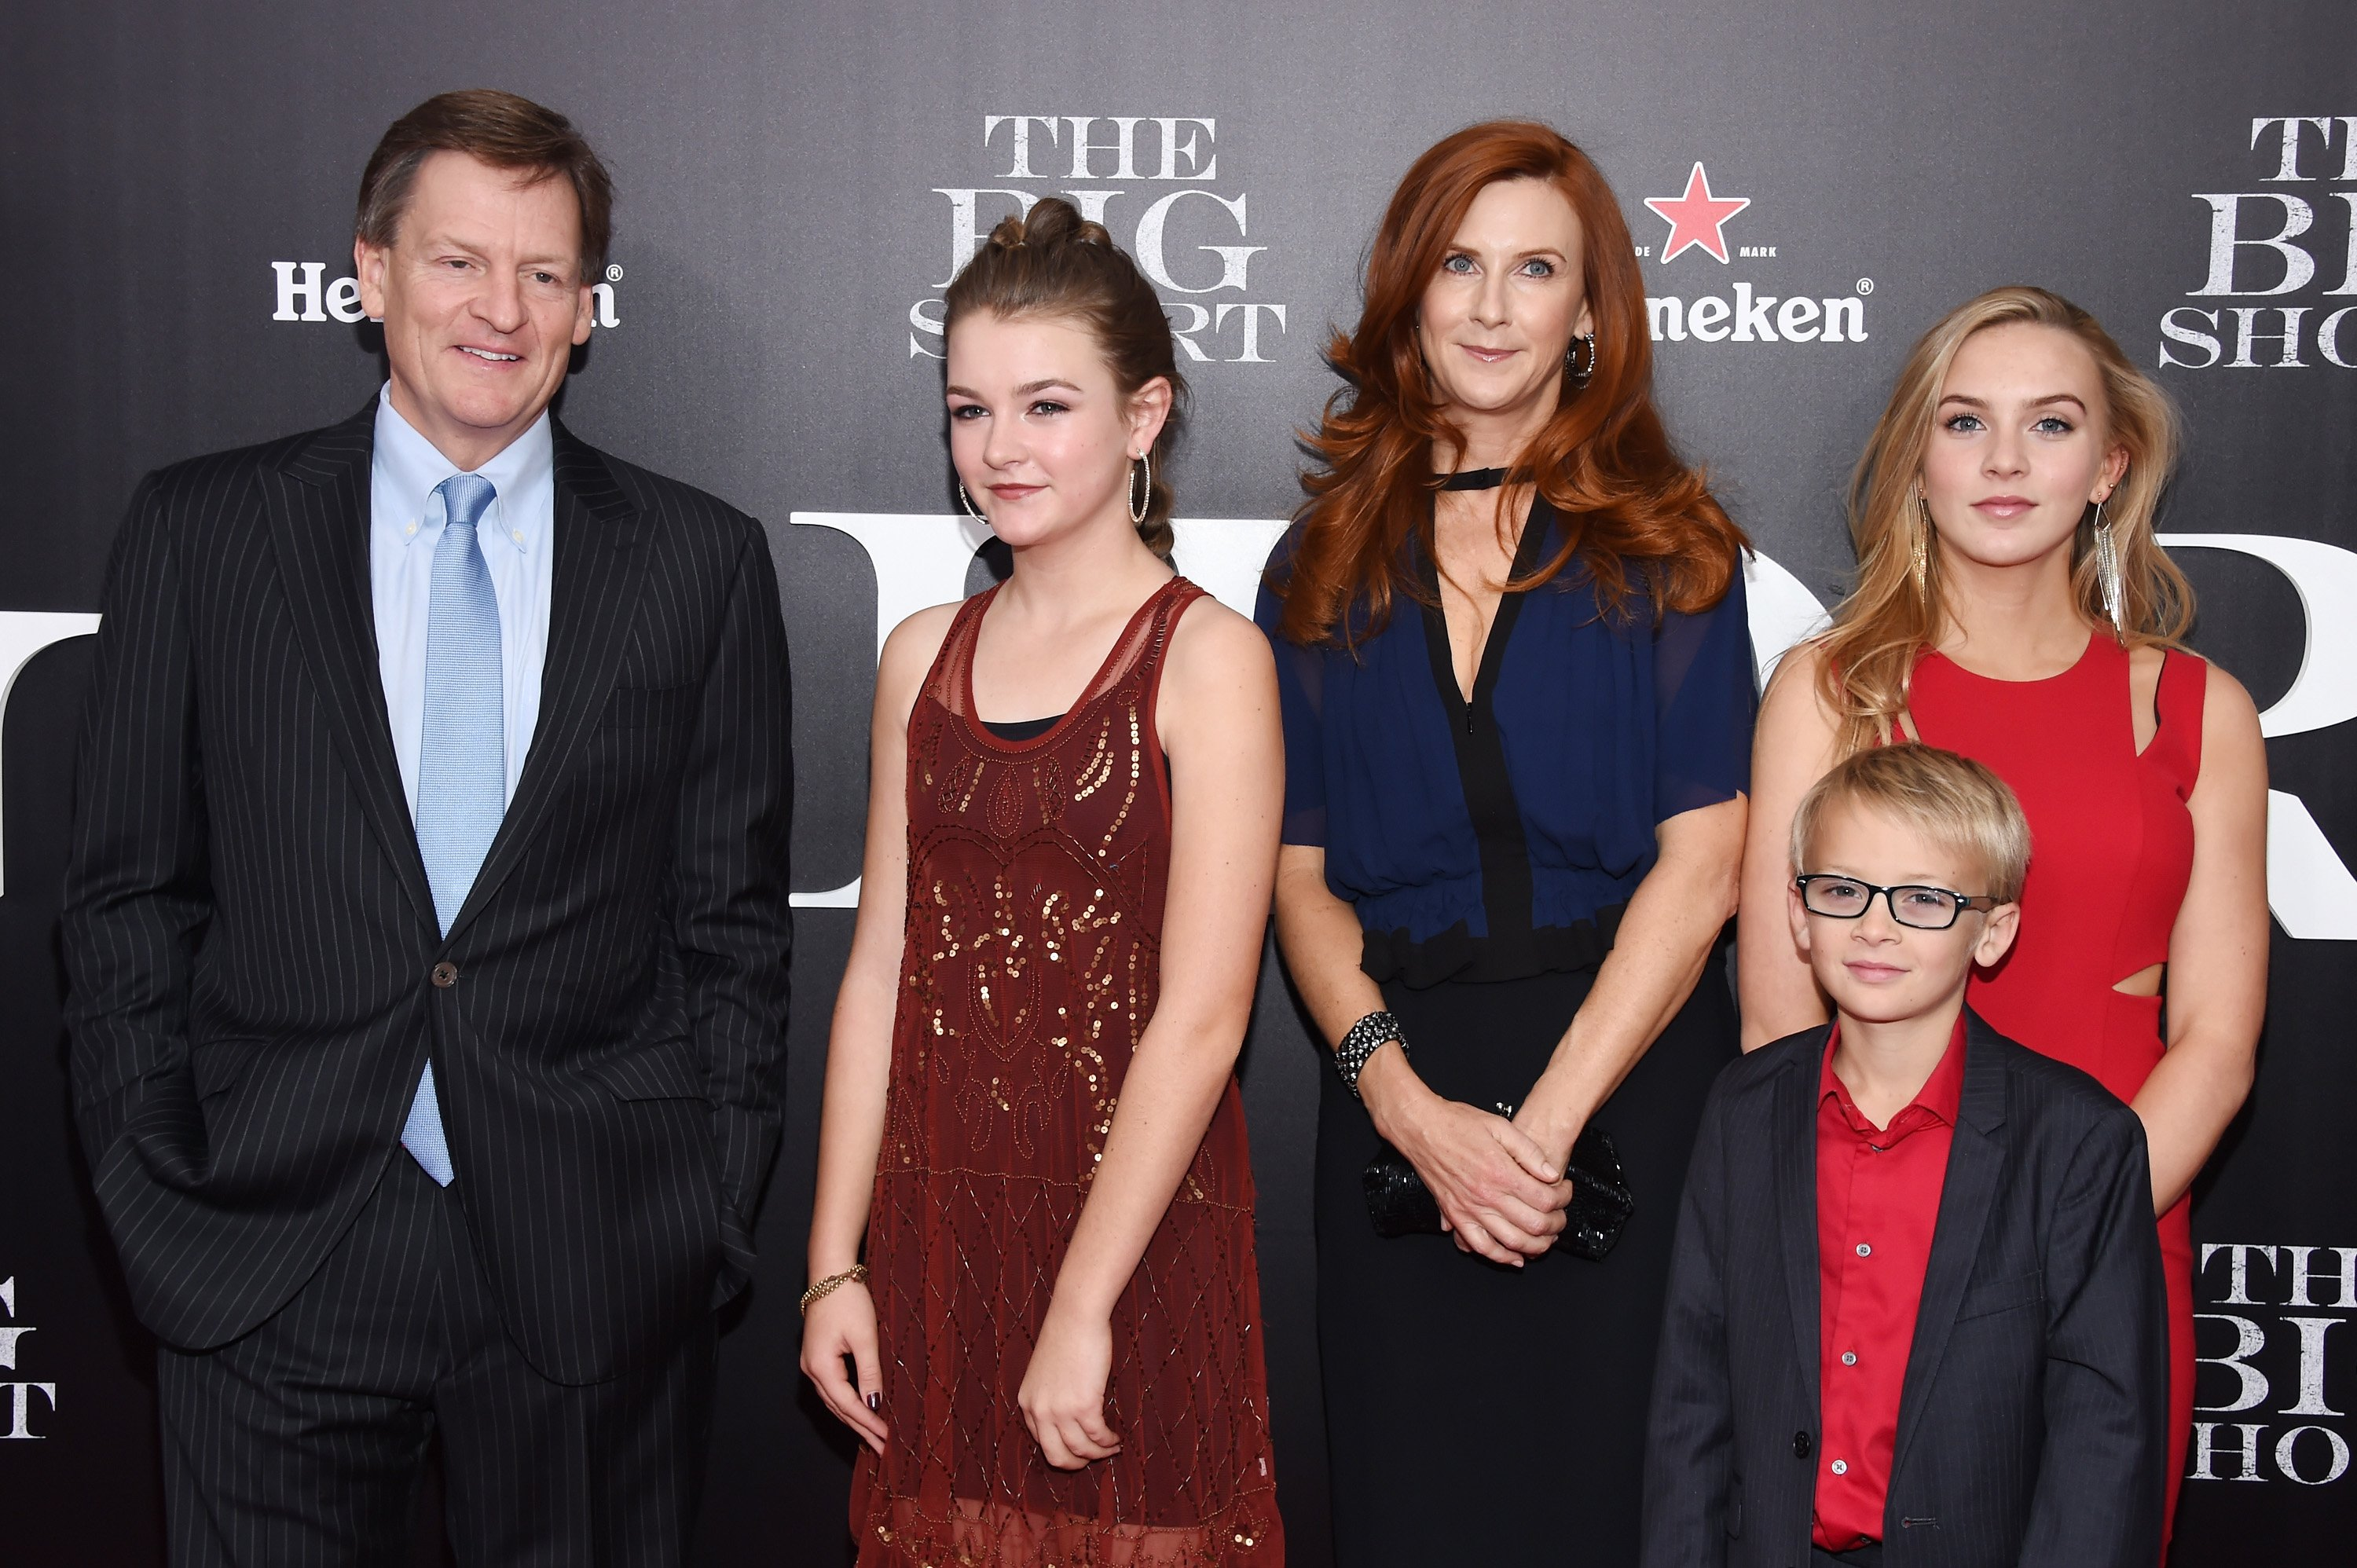 """Michael Lewis, Dixie Lewis, Tabitha Soren, Walker Jack Lewis, and Quinn Tallulah Lewis attend the premiere of """"The Big Short"""" at Ziegfeld Theatre on November 23, 2015 in New York City   Photo: Getty Images"""